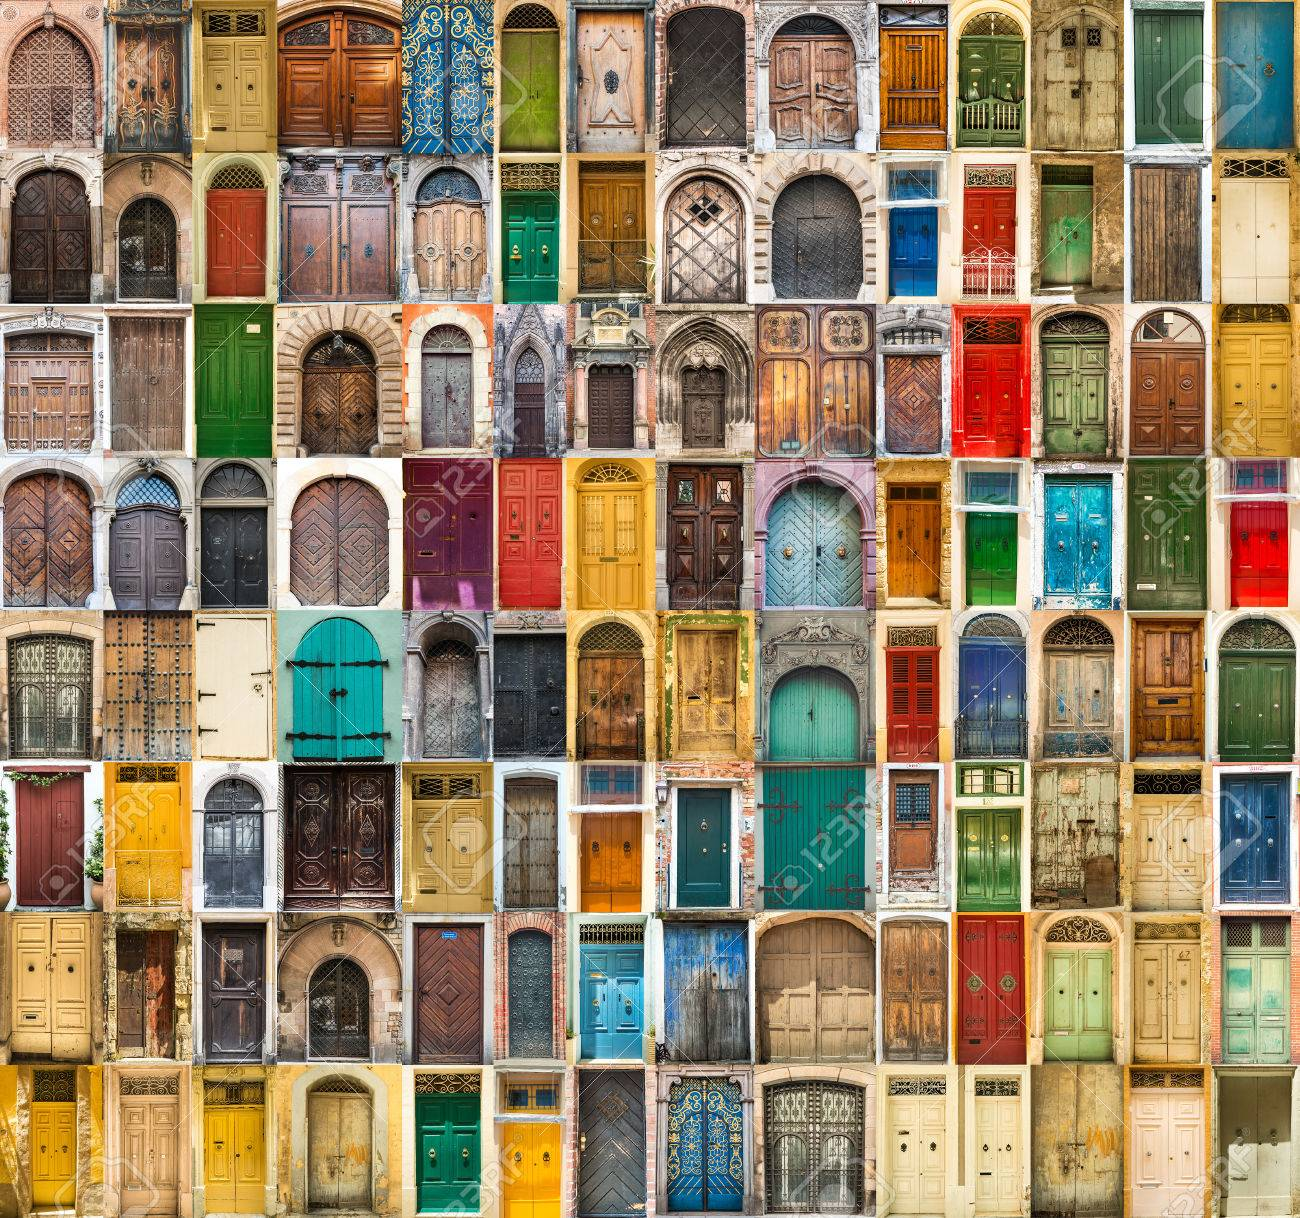 set photos of doors on the old districts of Europe - 49147355